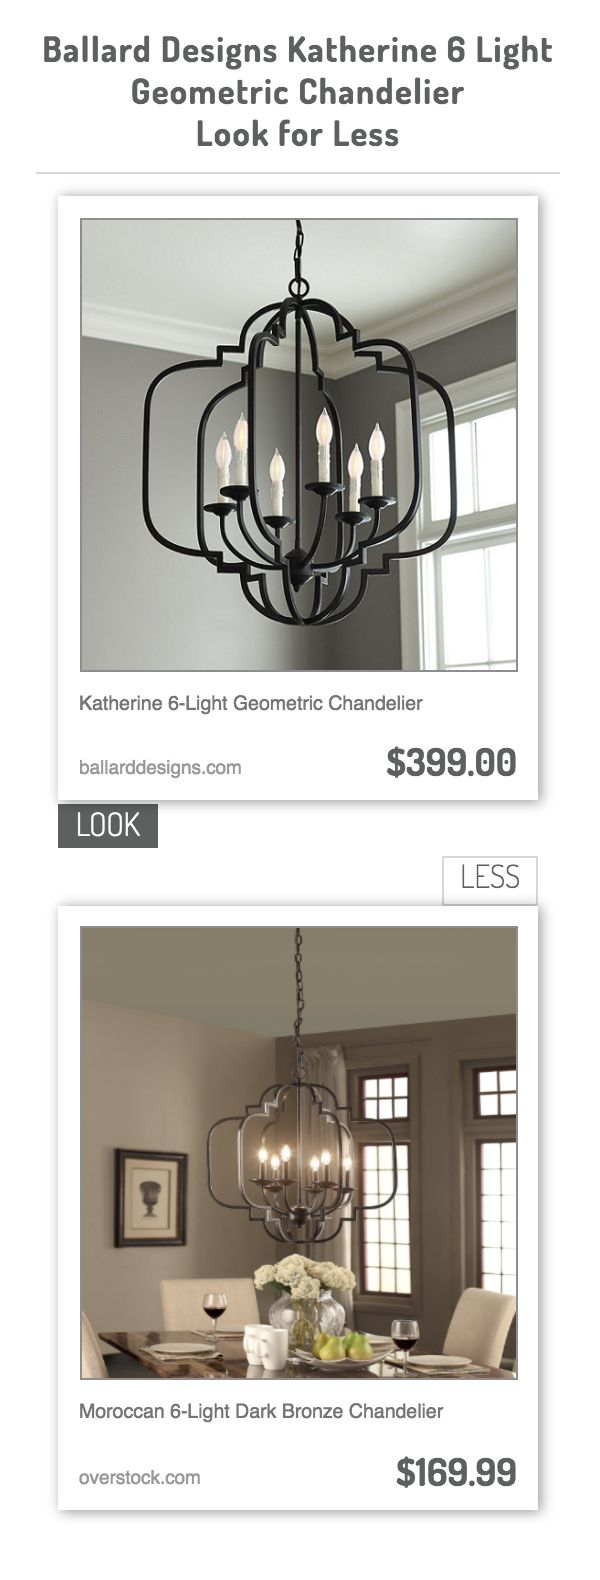 Moroccan mystique feature wall contemporary bedroom brisbane - Katherine 6 Light Geometric Chandelier Vs Moroccan 6 Light Dark Bronze Chandelier